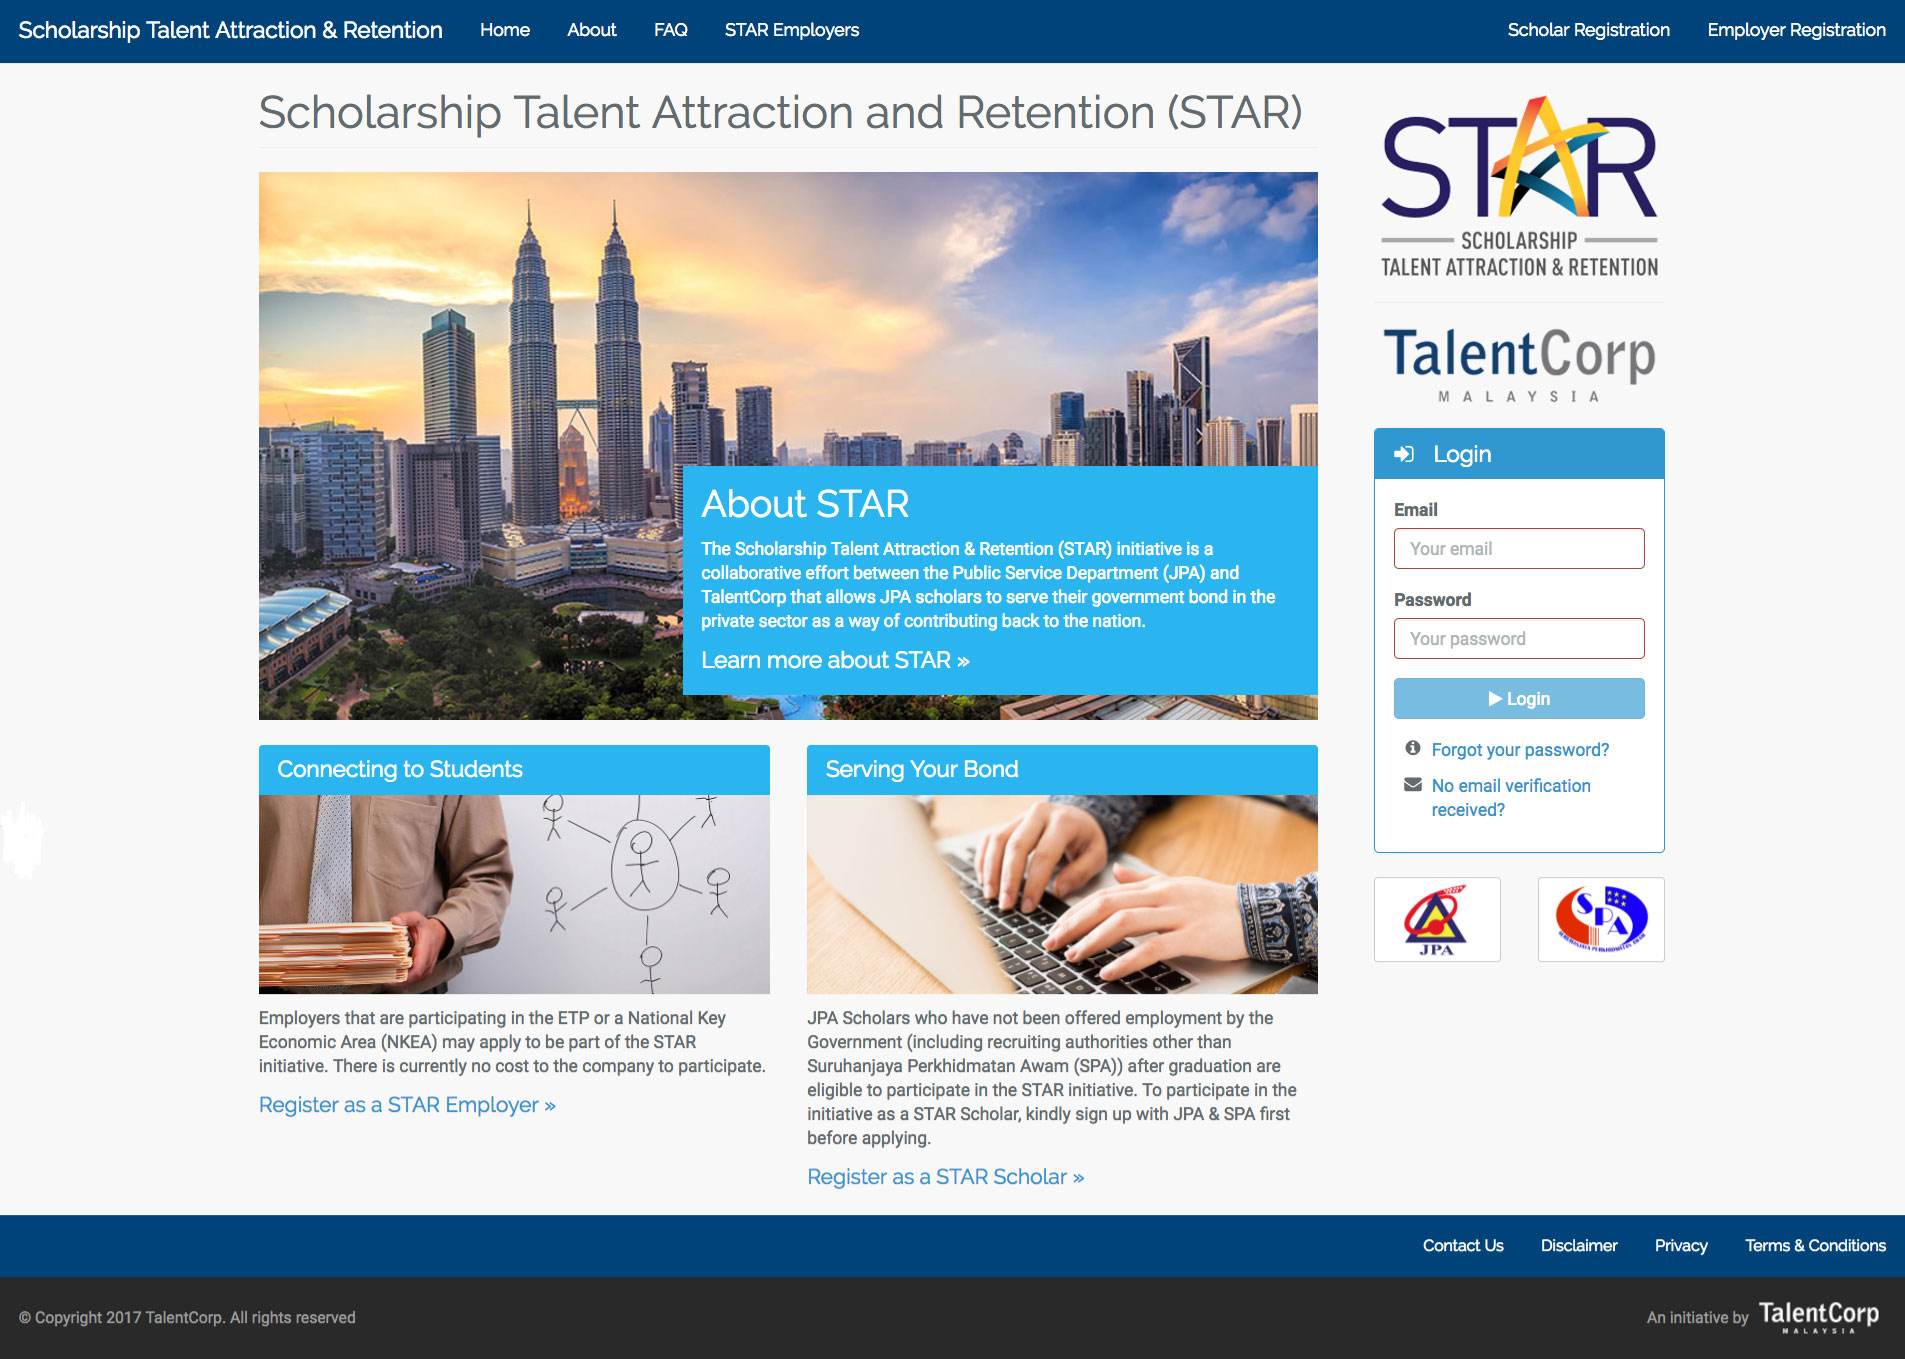 Scholarship-Talent-Attraction-and-Retention-STAR-TalentCorp